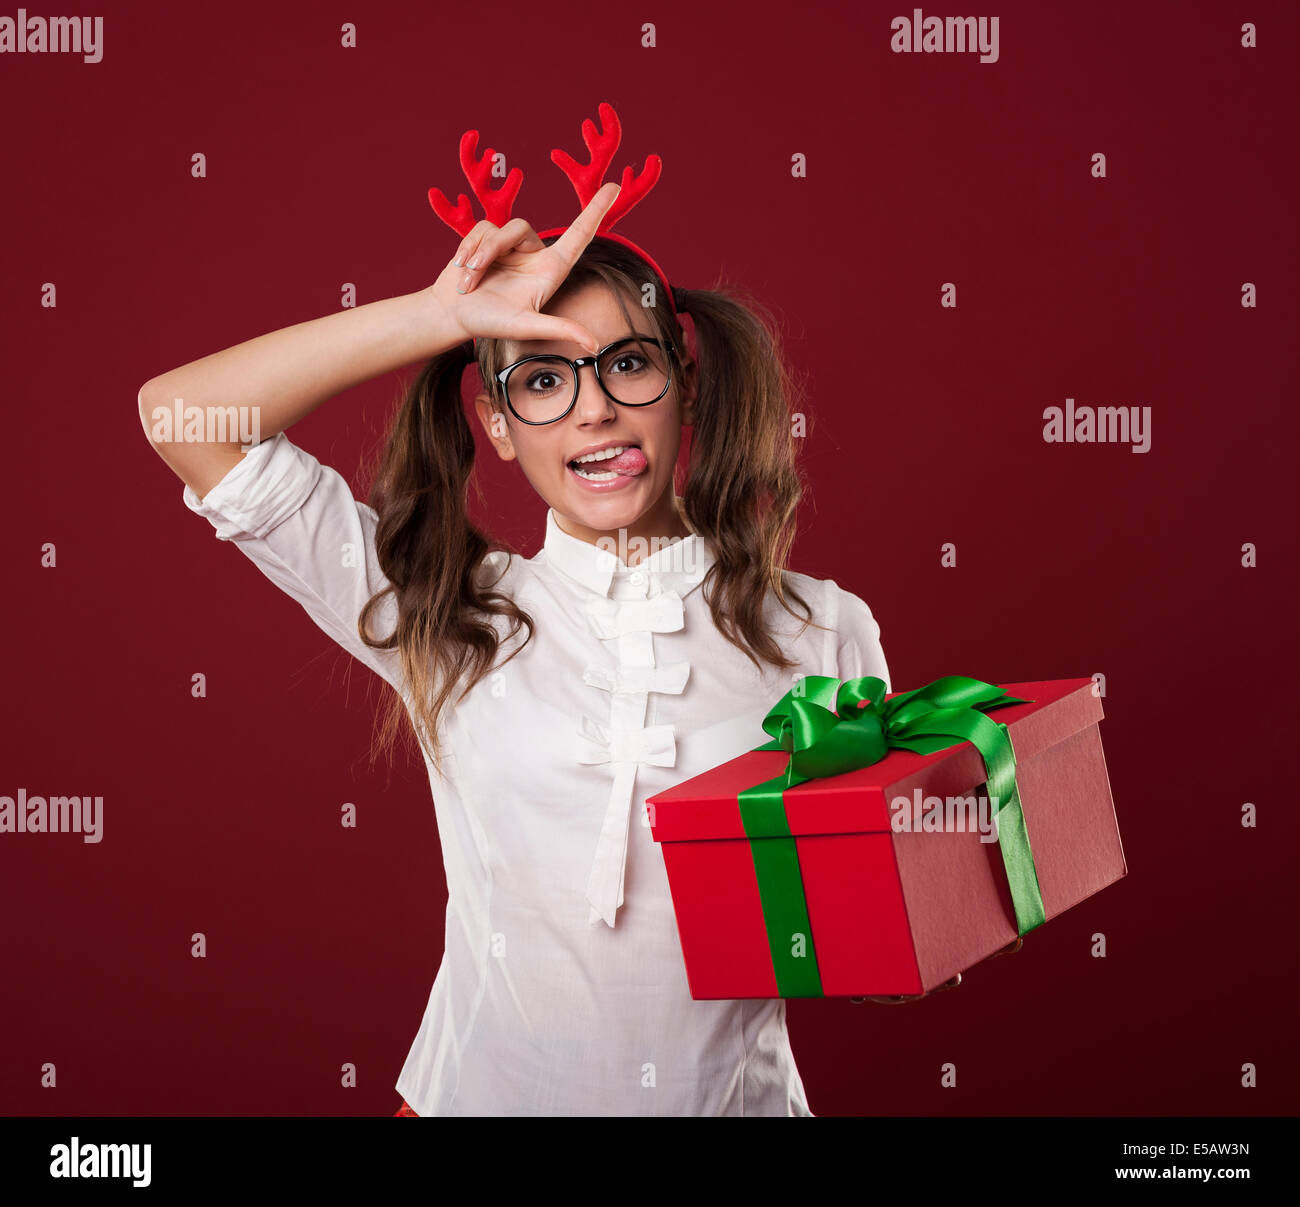 Nerdy woman with Christmas gift showing loser sign Debica, Poland - Stock Image